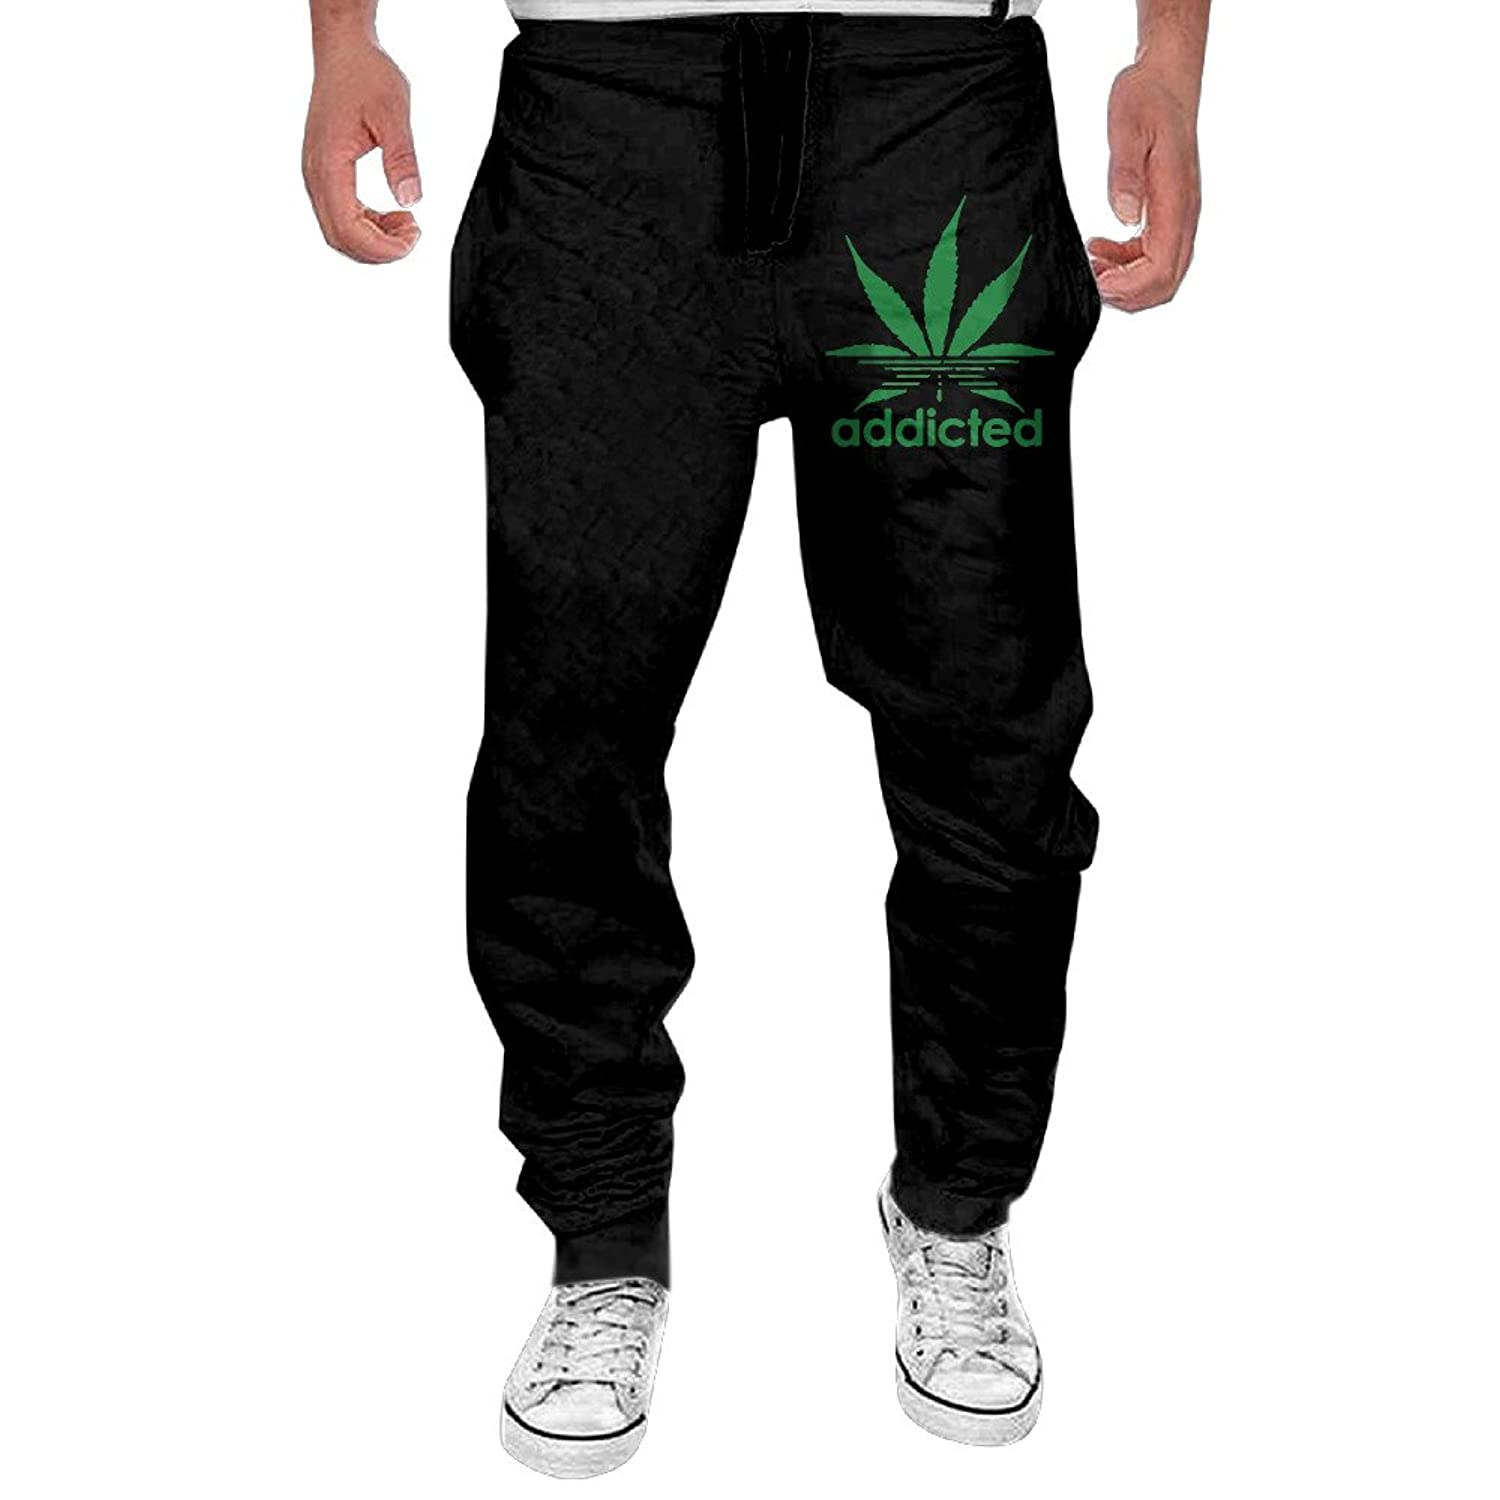 Men Addicted Green Leaf Weed Day Casual Sweatpants